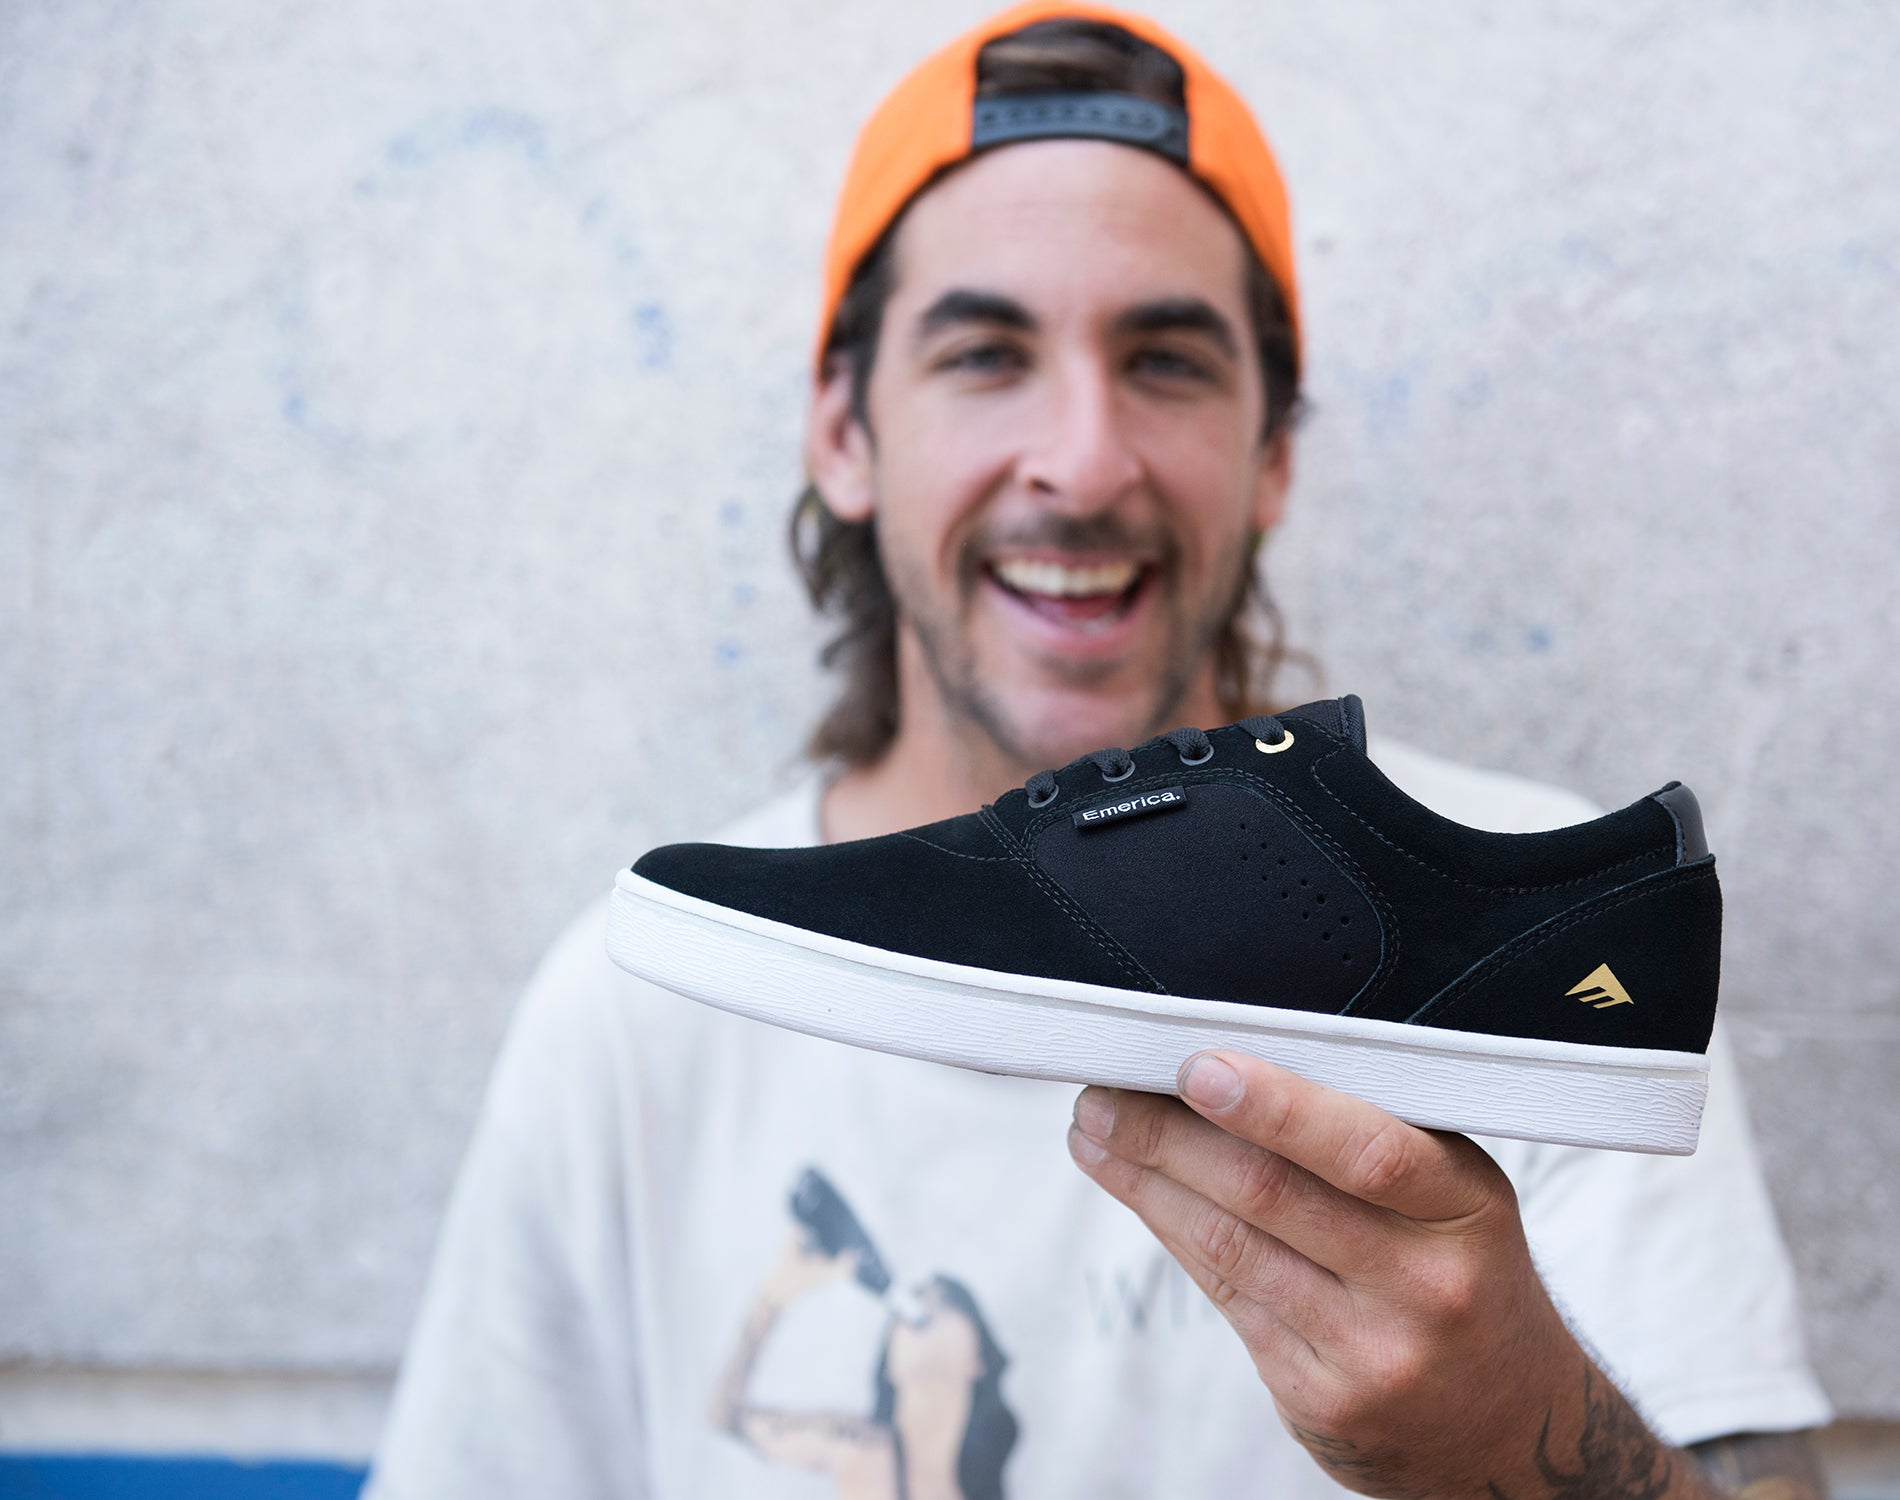 emerica Shoes Bio | 50-50 Skate Shop Australia